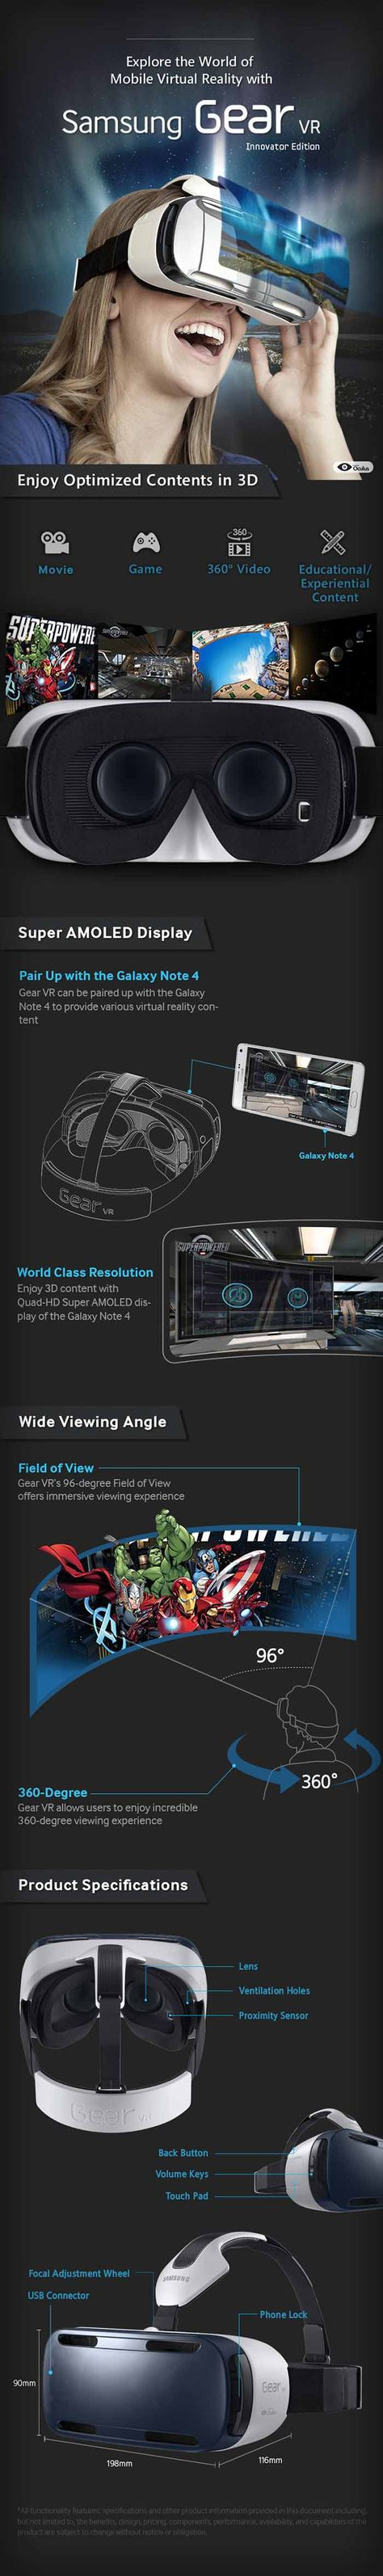 Samsung Galaxy Gear VR (Explore the world of mobile virtual reality) http://www.thisreviewer.com/